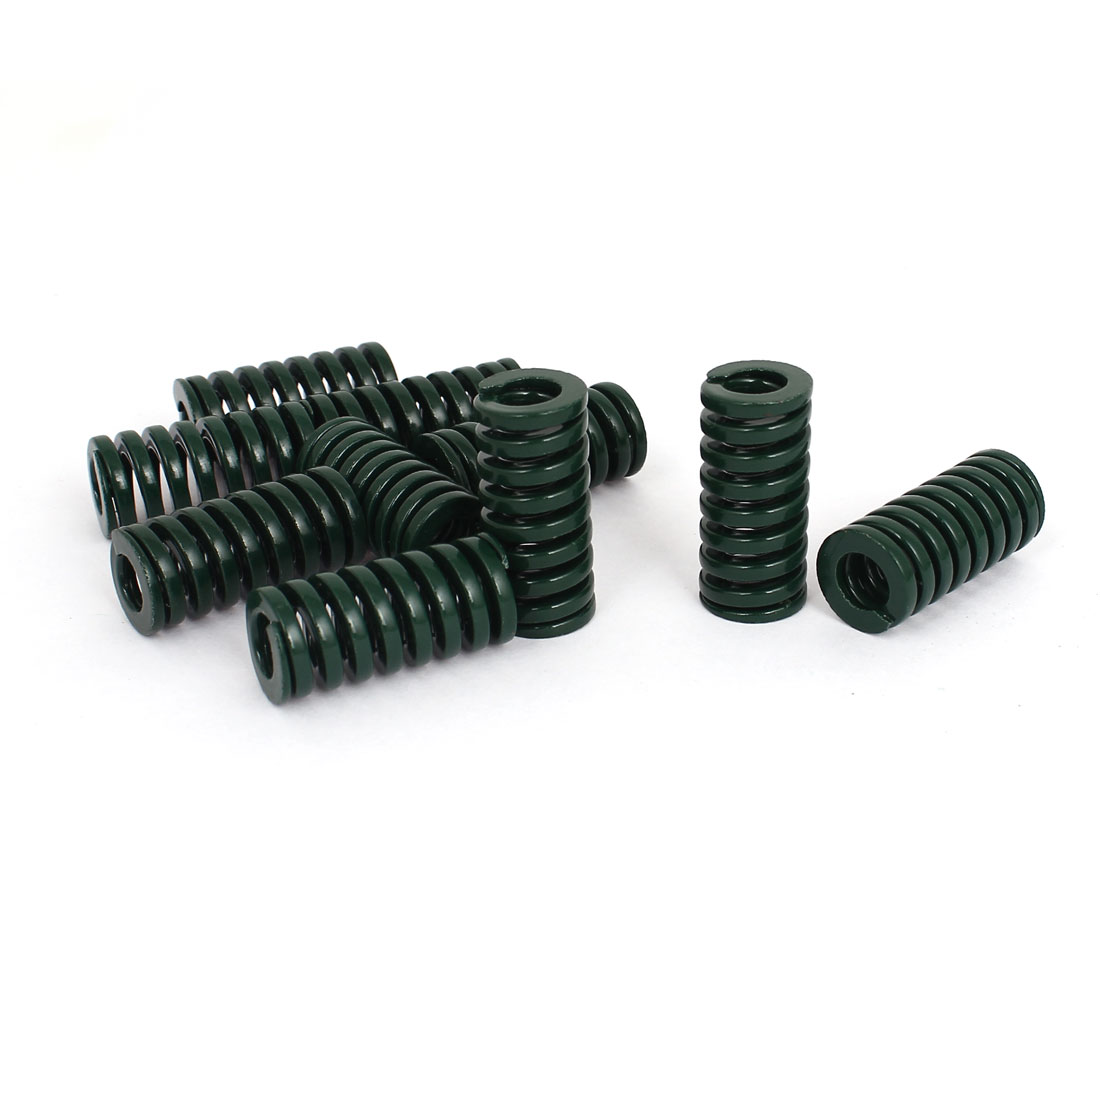 14mm OD 30mm Long Heavy Load Stamping Compression Mold Die Spring Green 10pcs